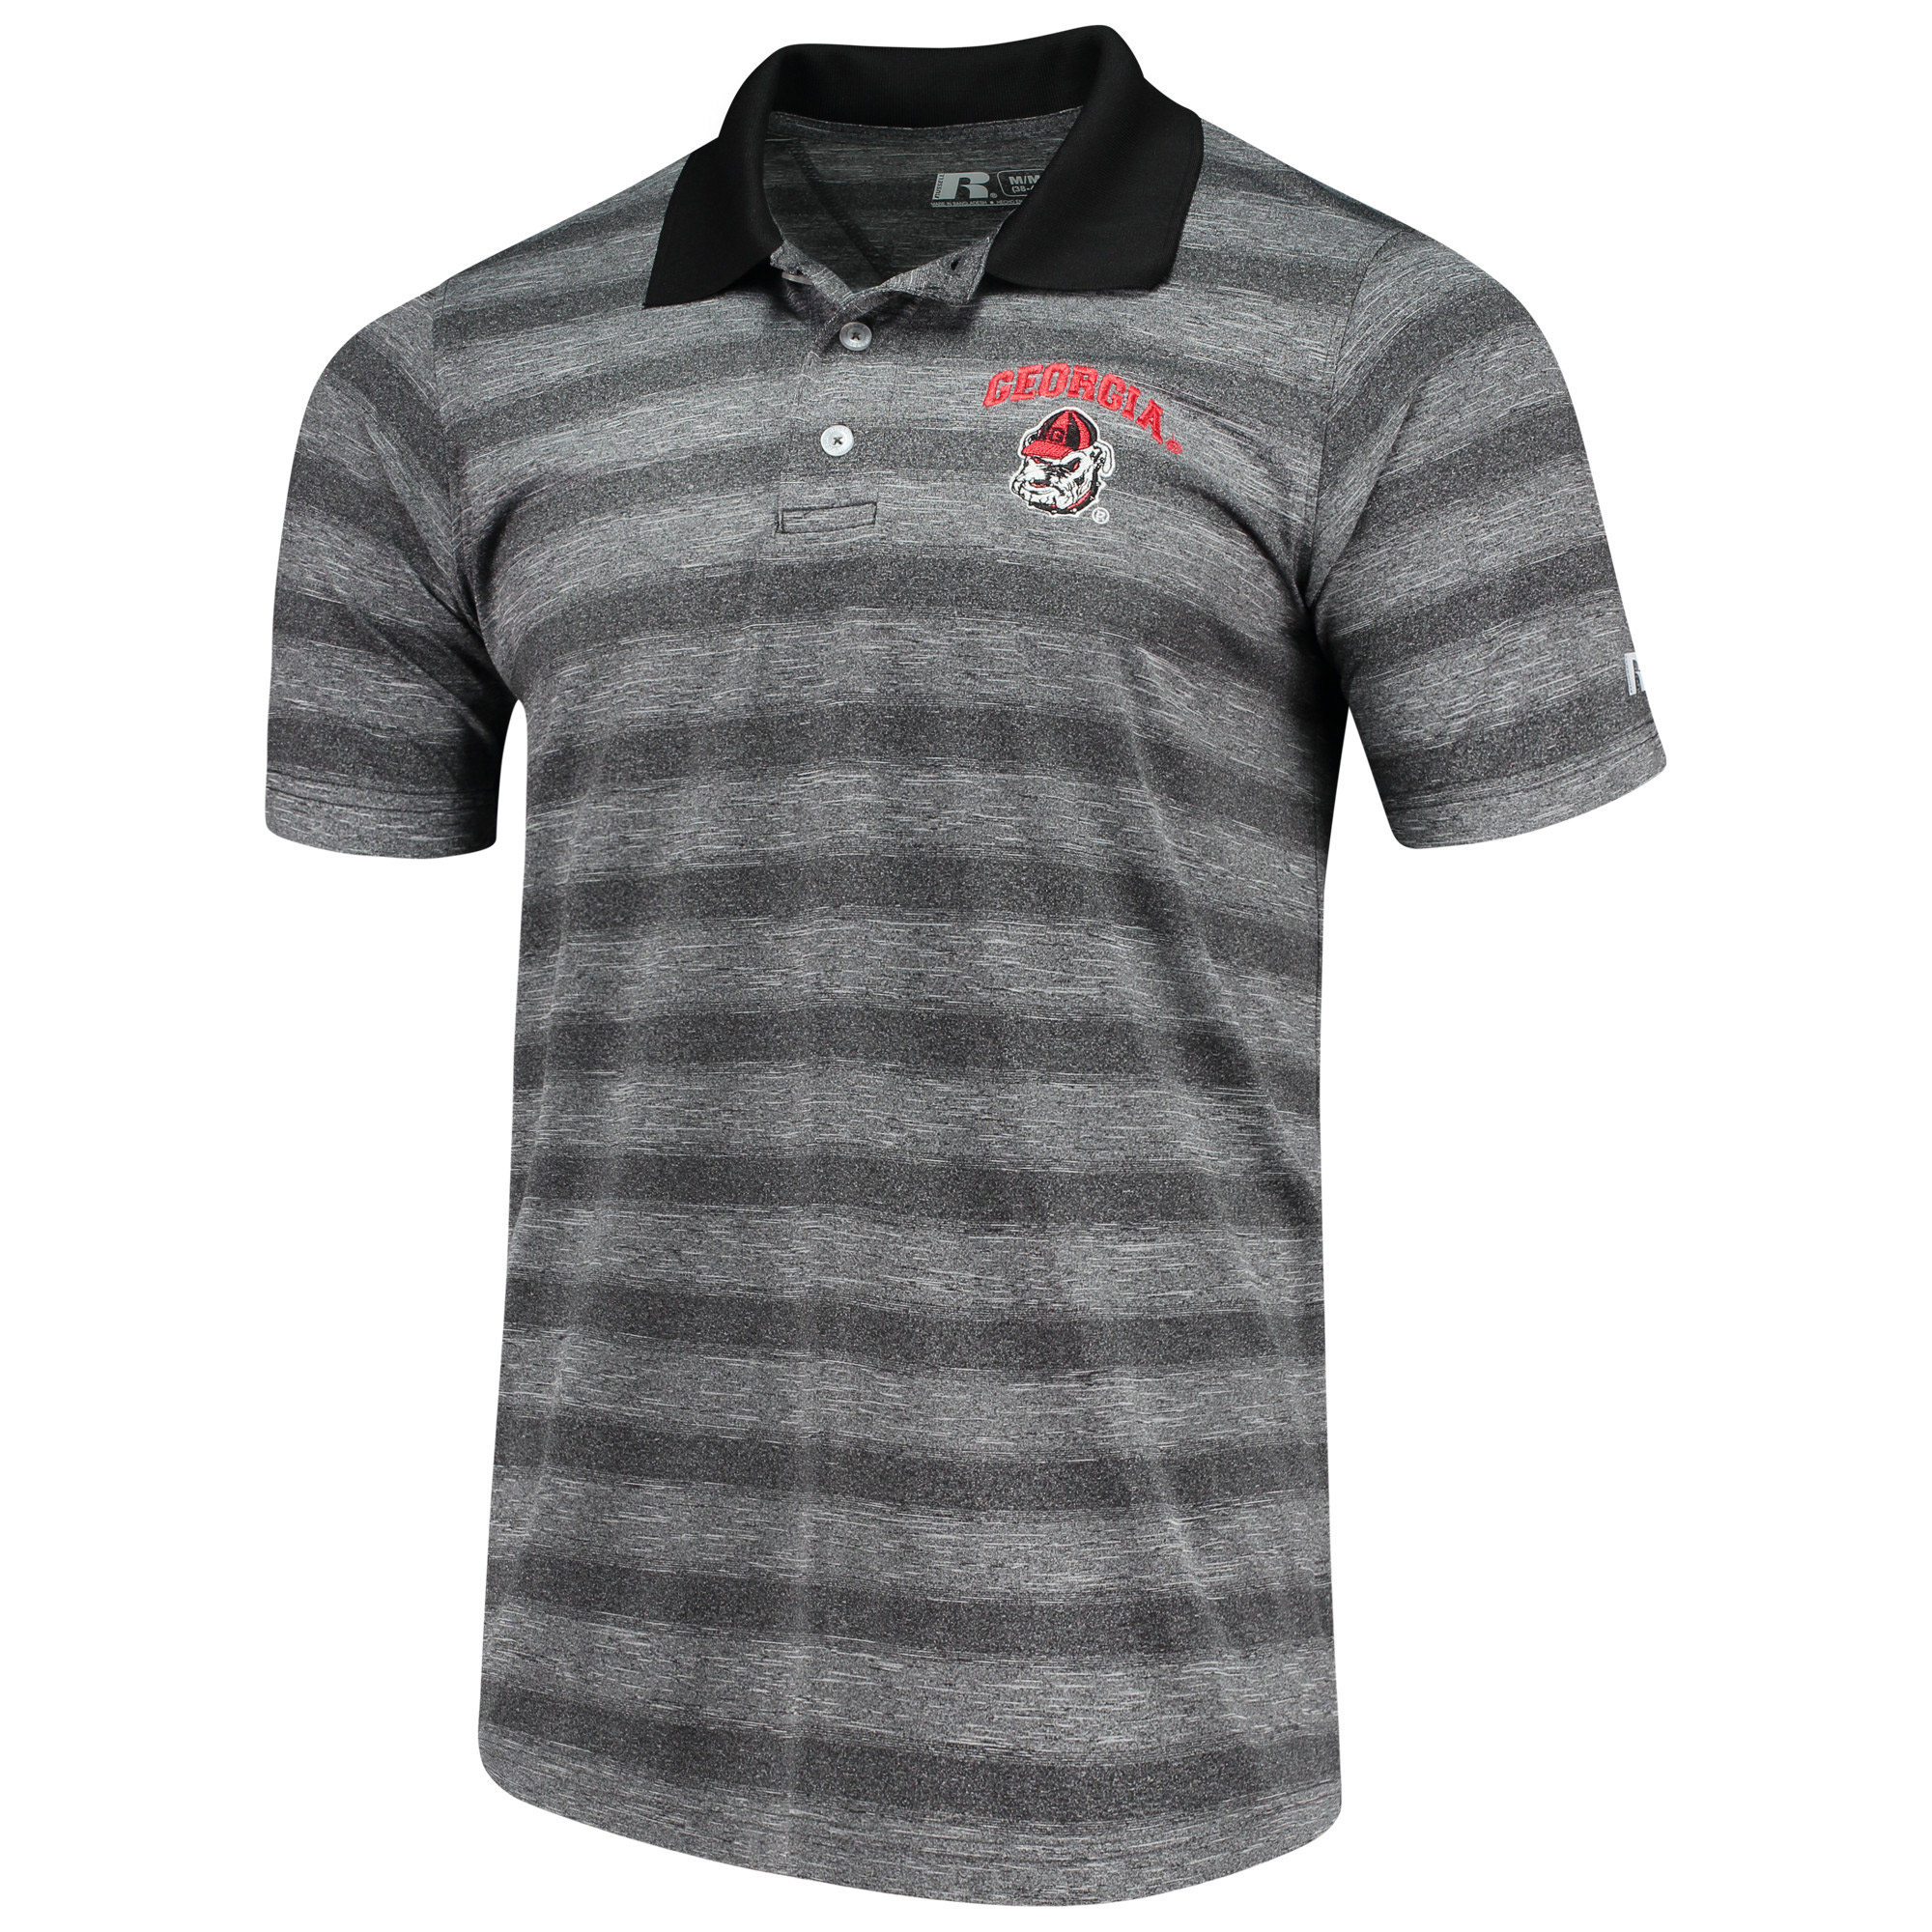 Men's Russell Heathered Black Georgia Bulldogs Classic Striped Polo